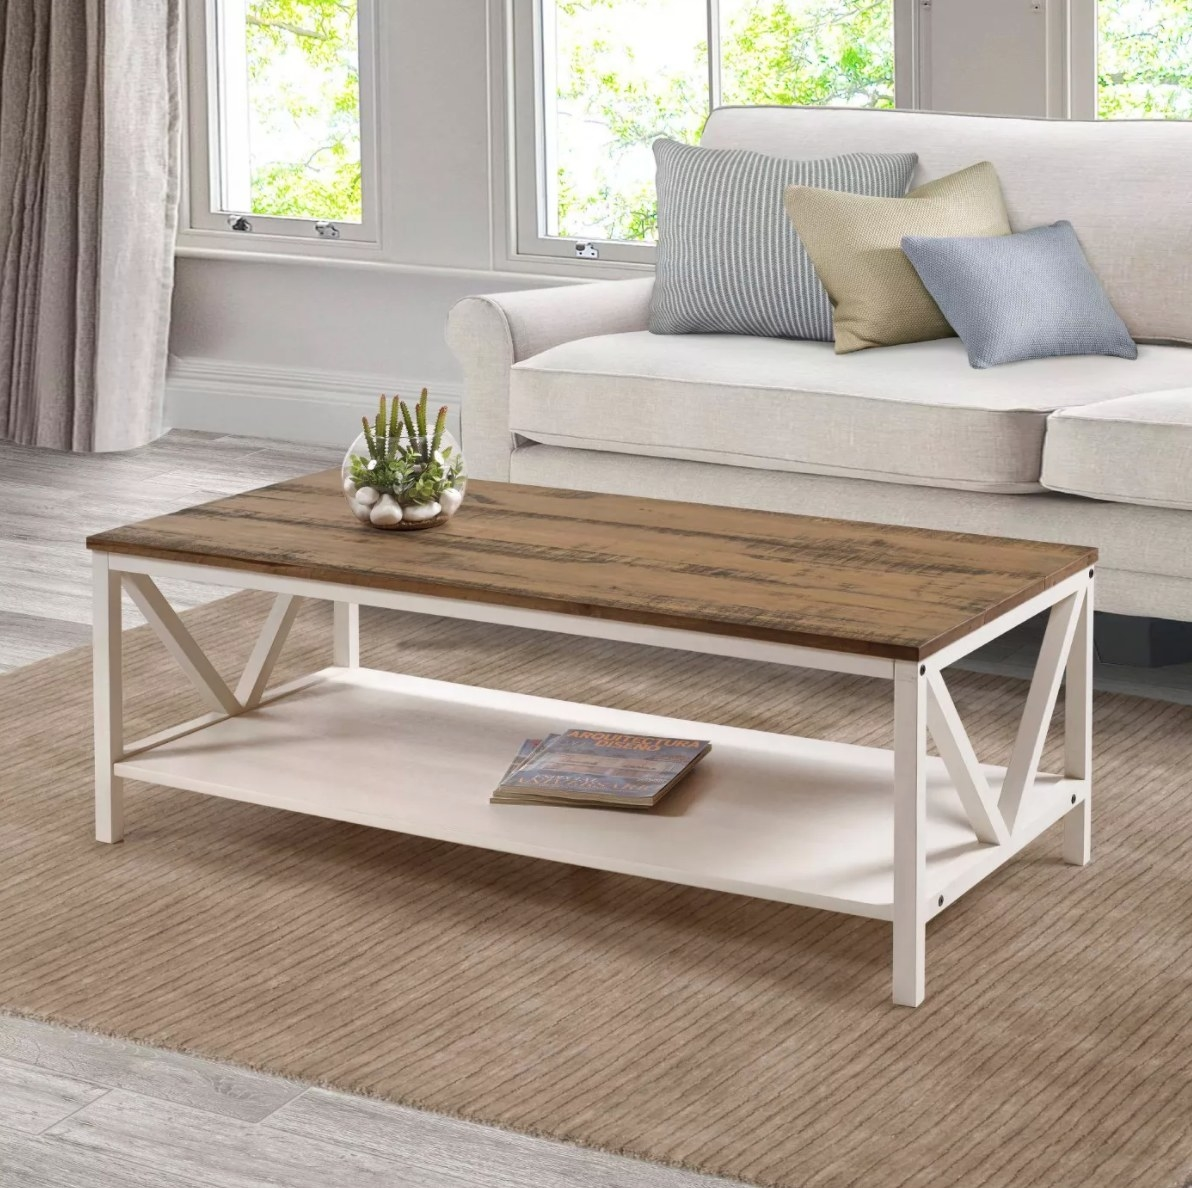 The wood farmhouse coffee table in two-toned white and barn house with a plant on top and with magazines underneath